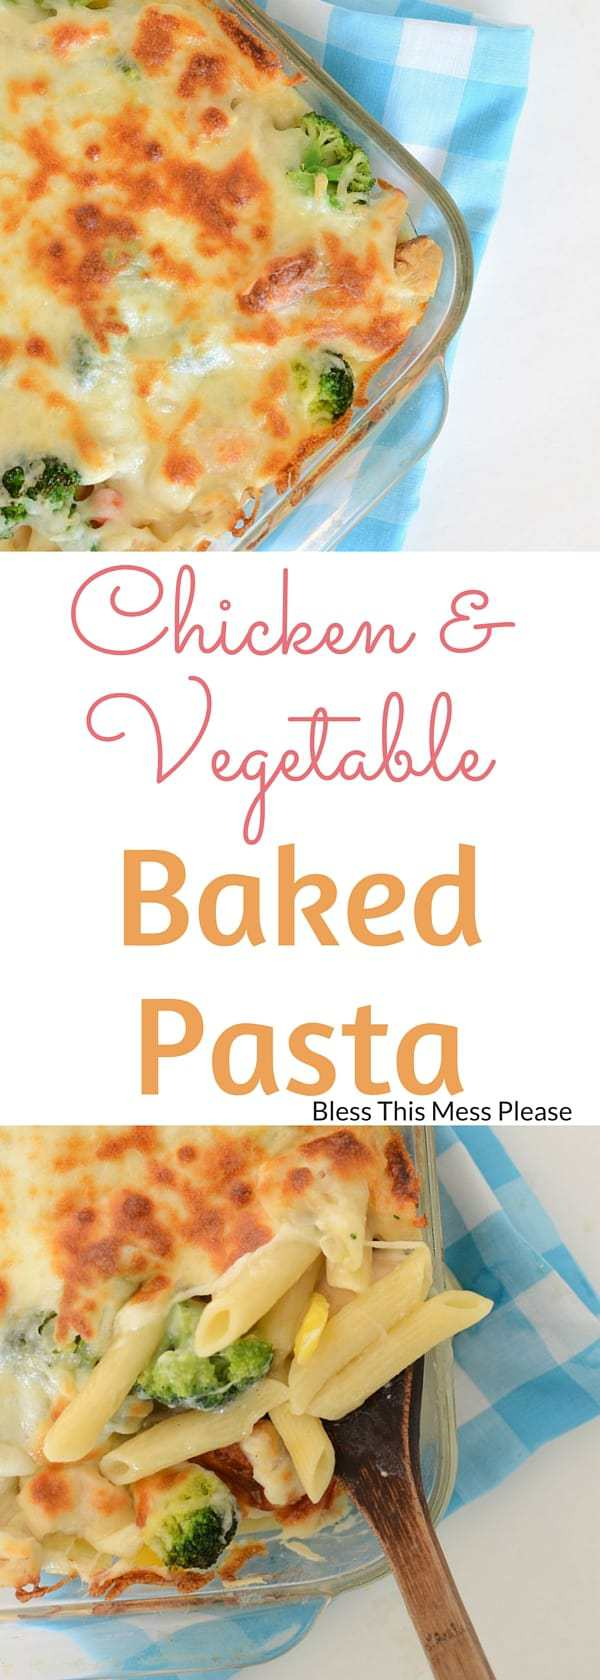 Chicken and Vegetable Baked Pasta